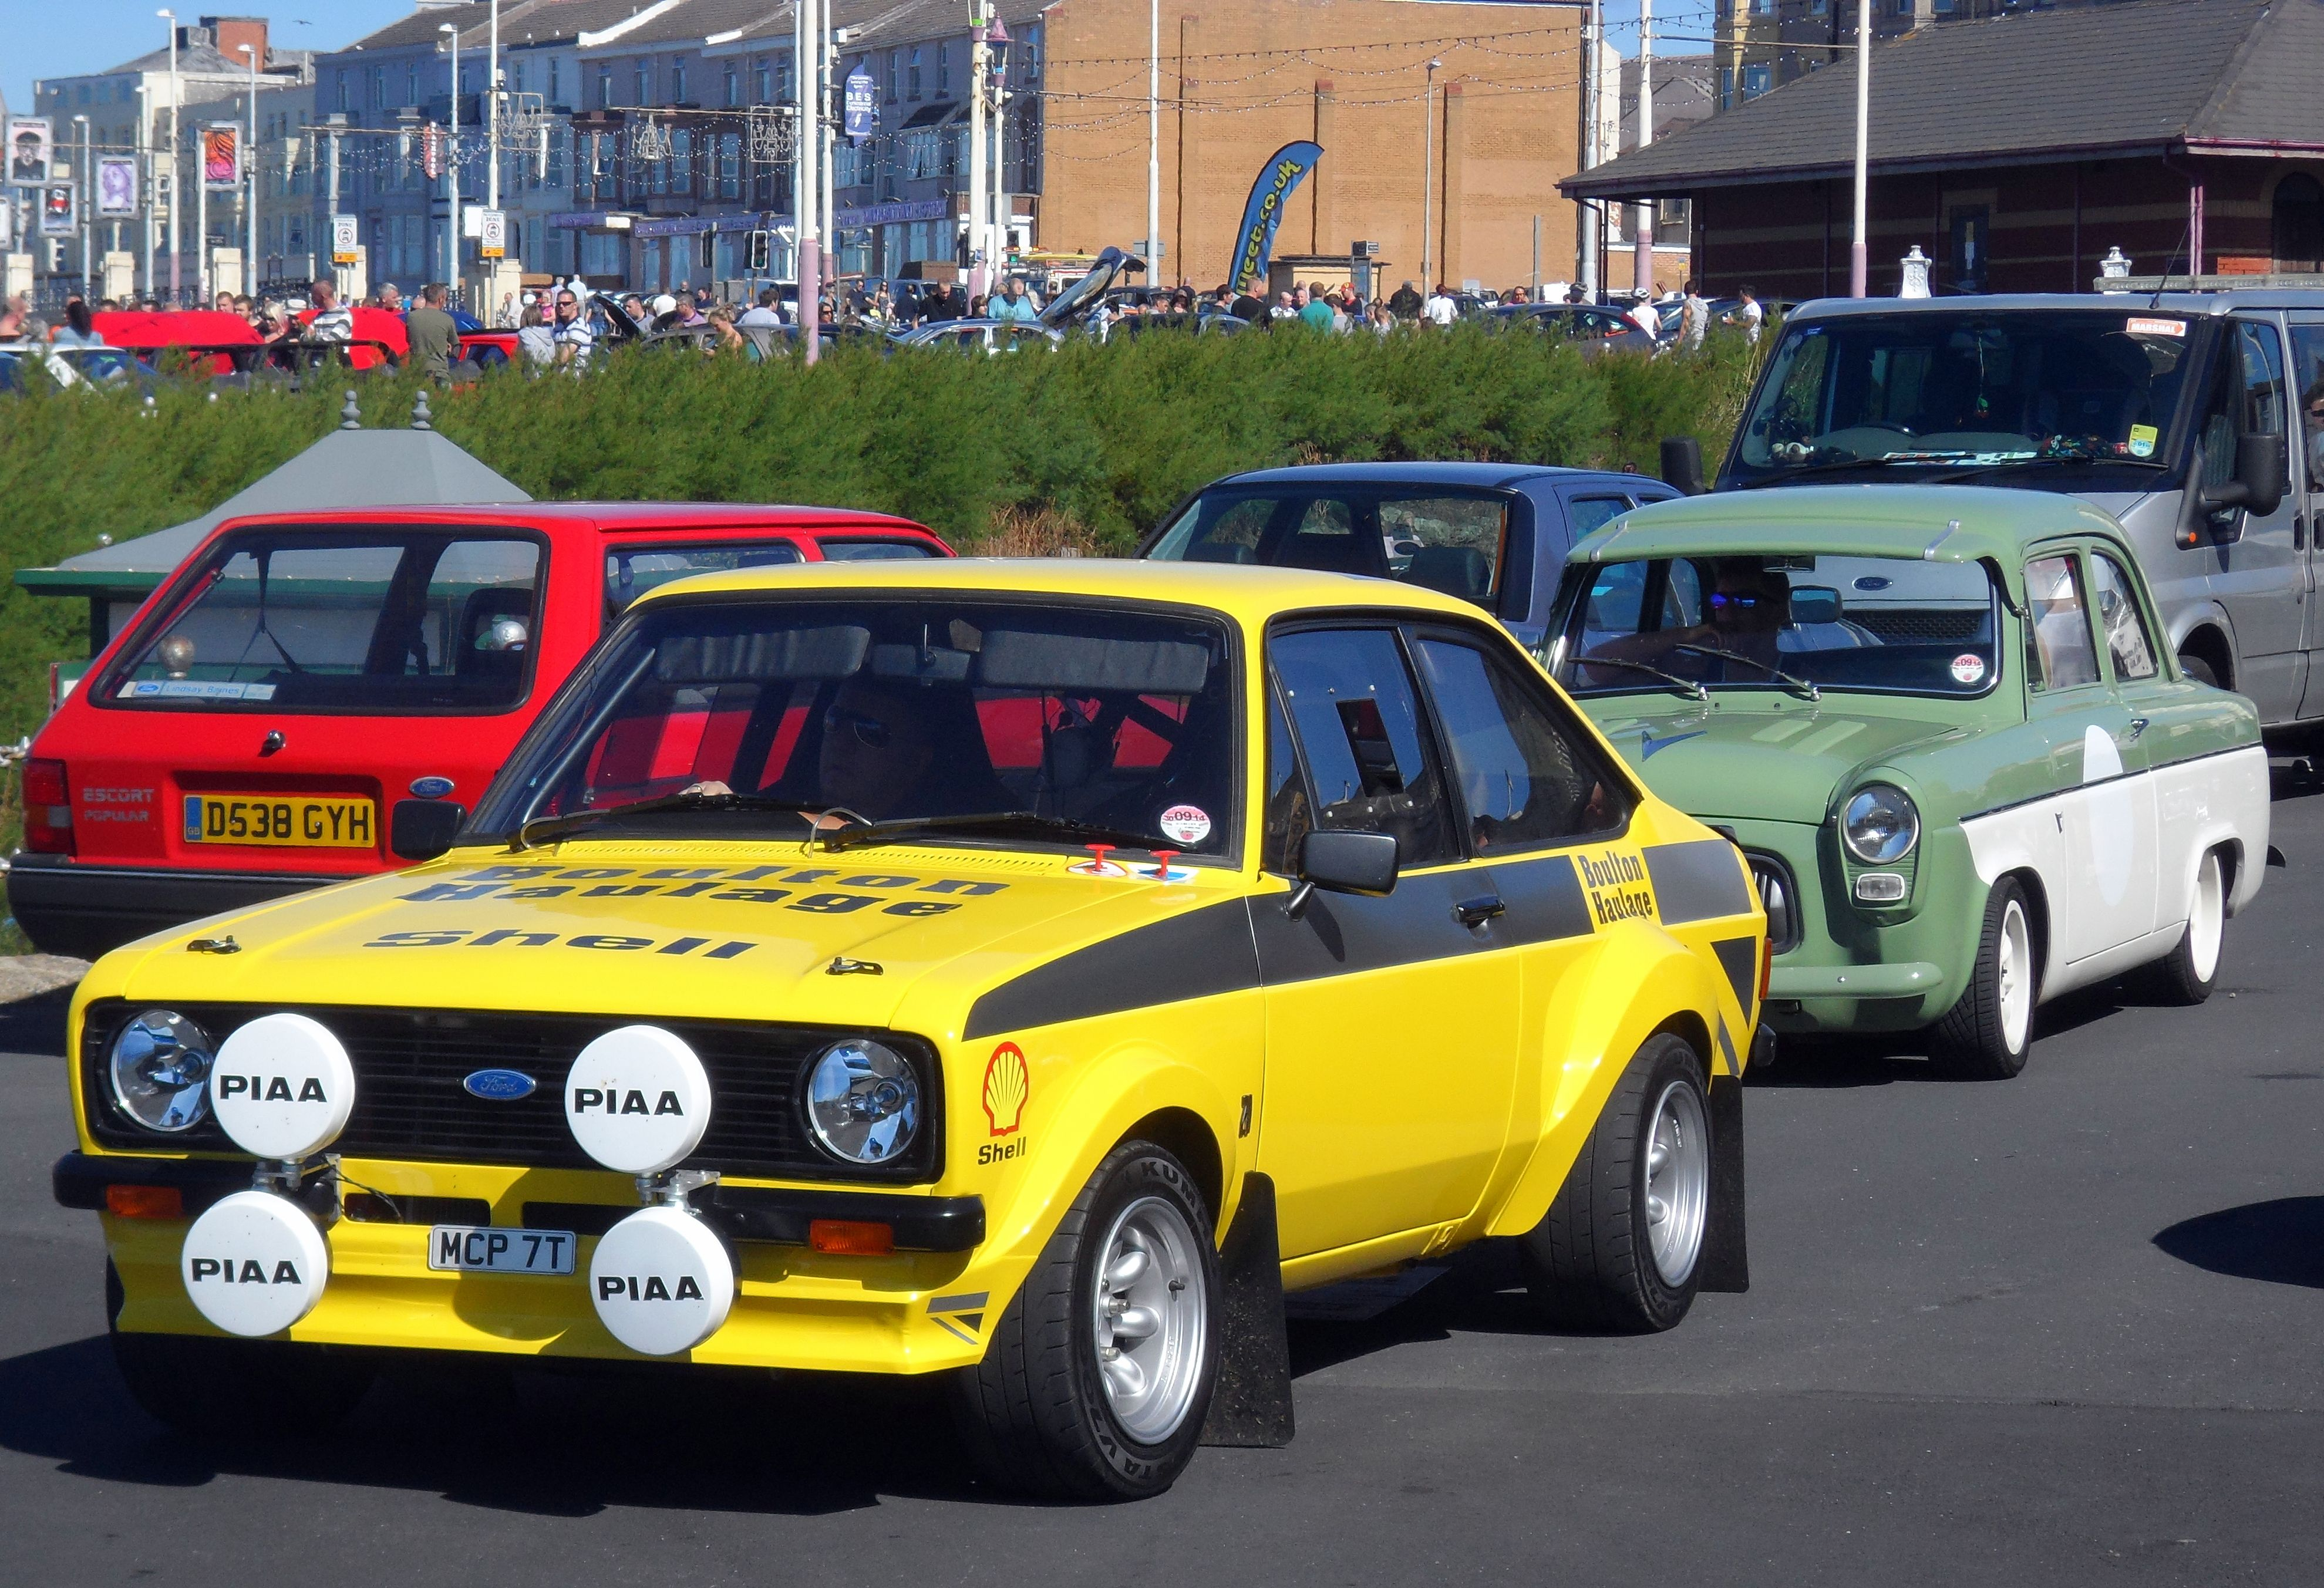 Ford Escort Mk2 Rally Car followed by Ford Prefect with Lotus Engine ...